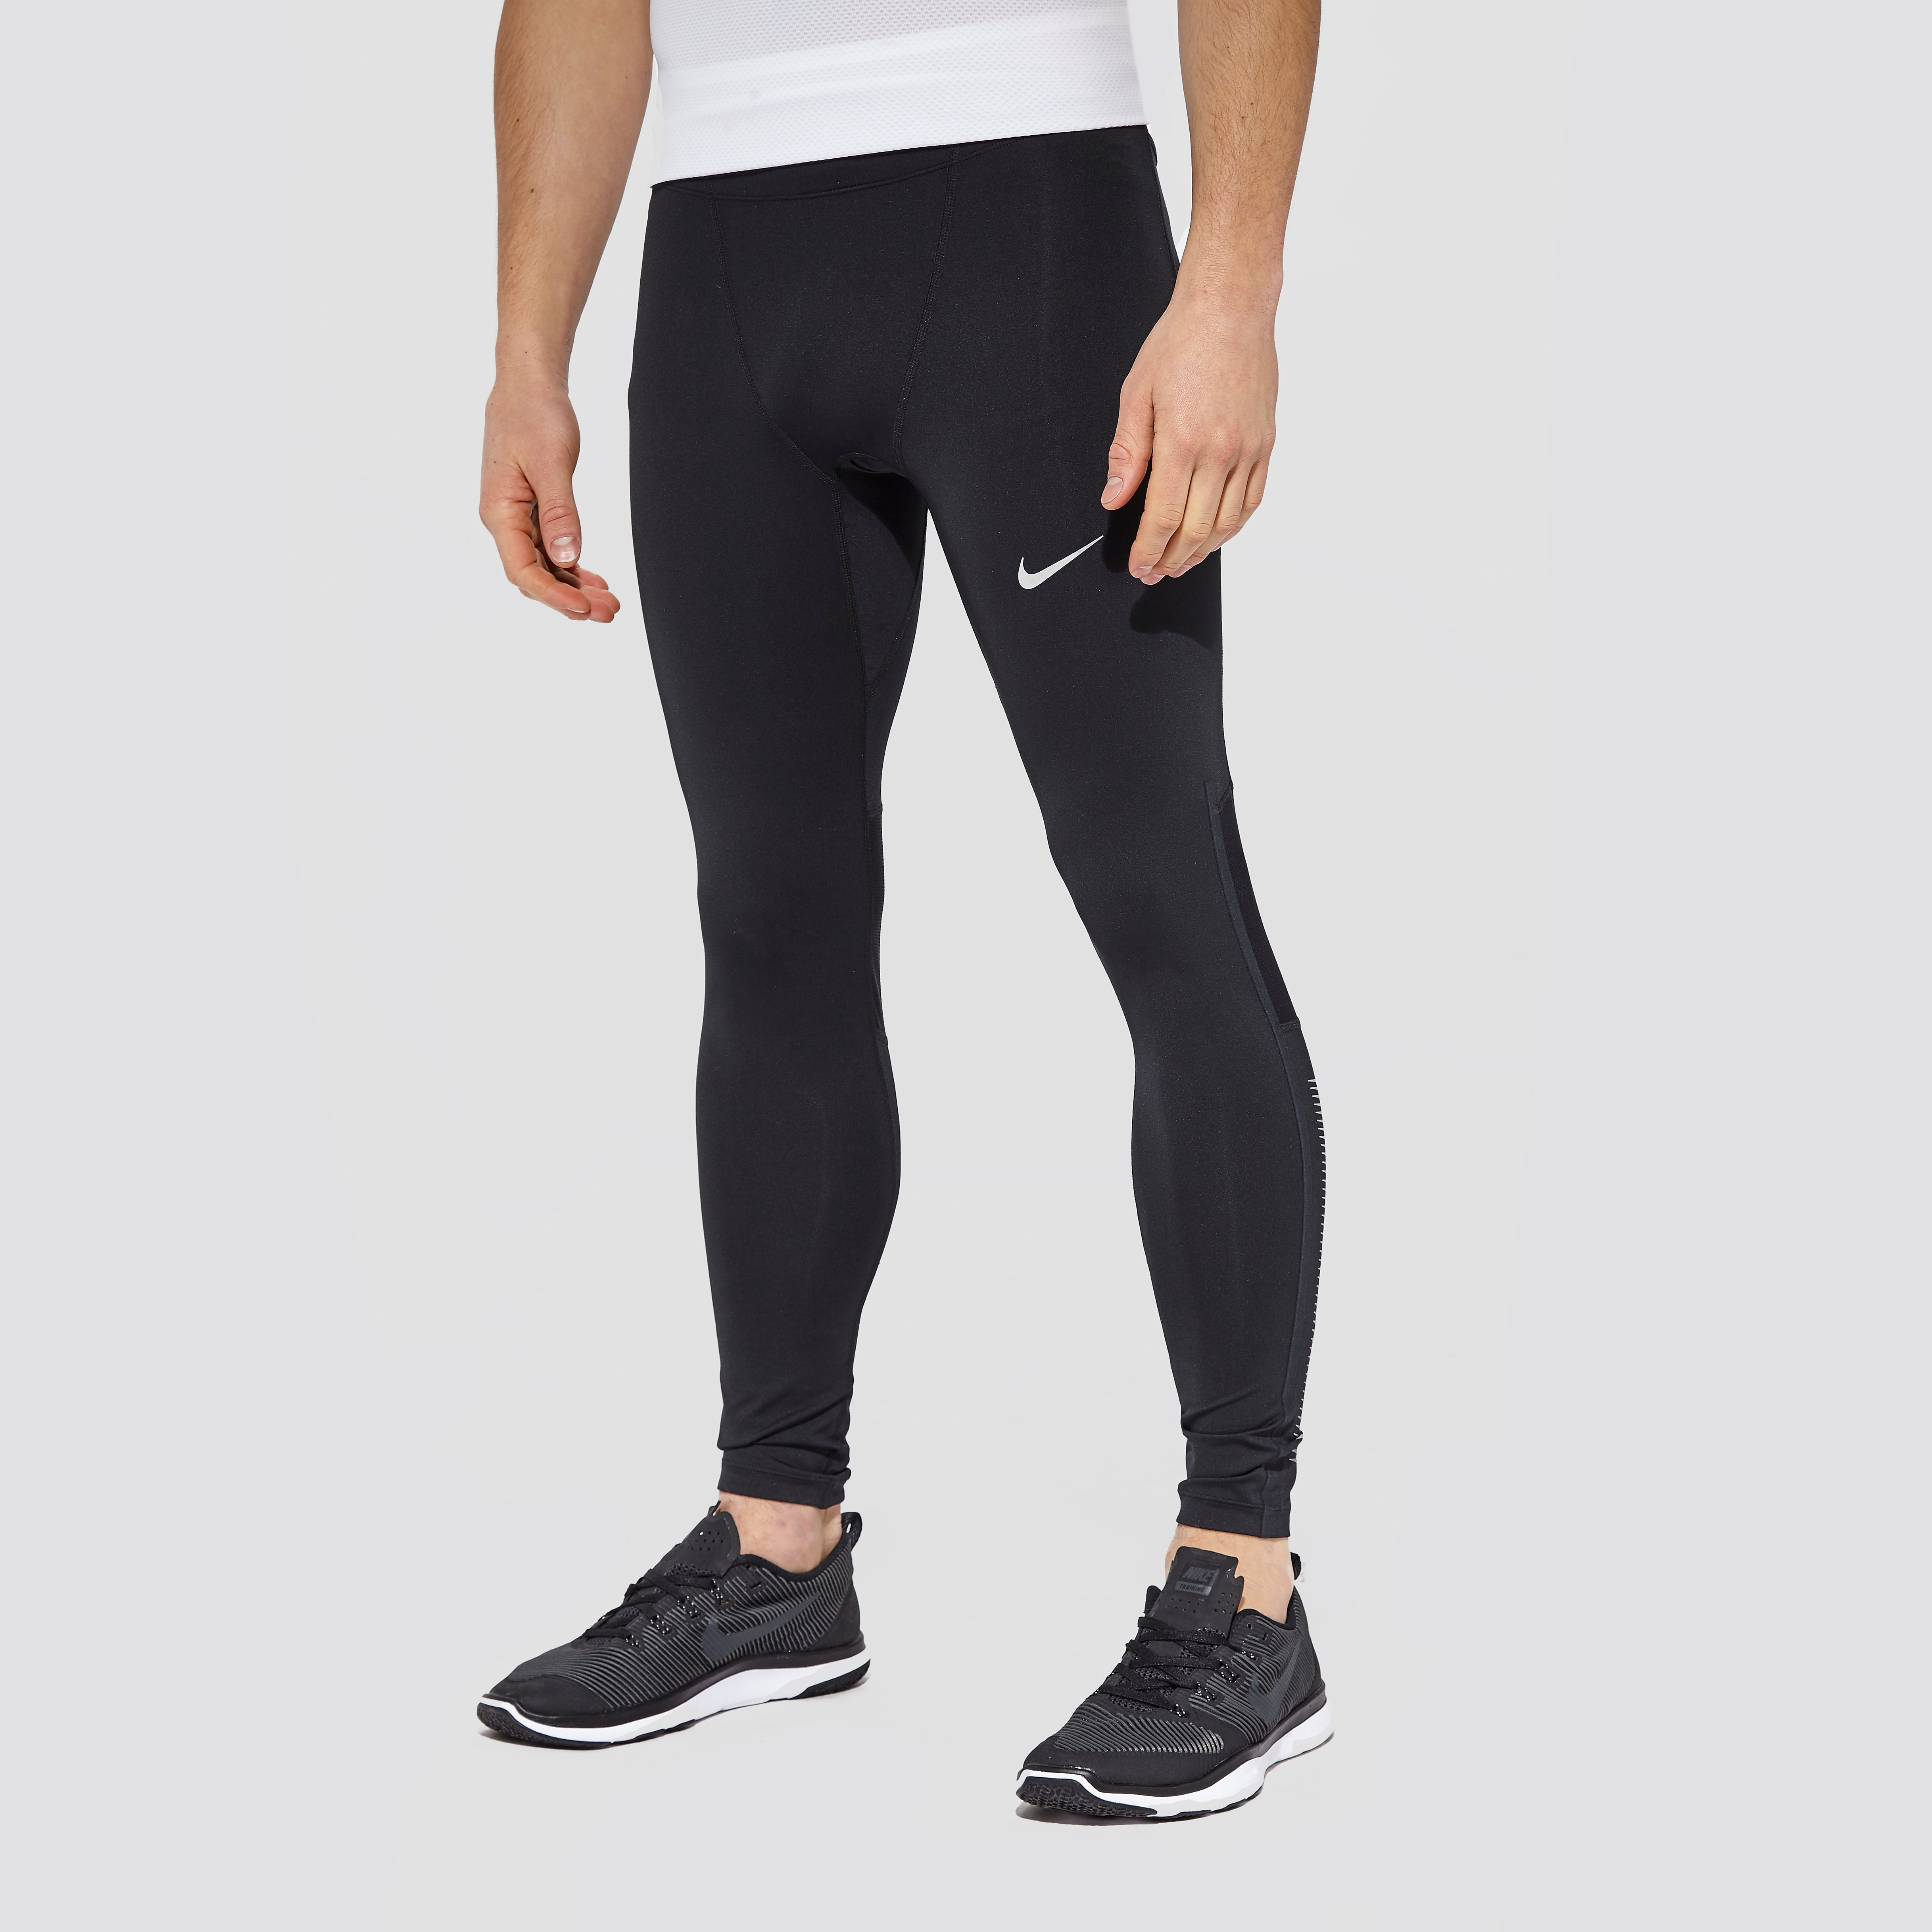 Nike Power Flash Tech Men's Running Tights